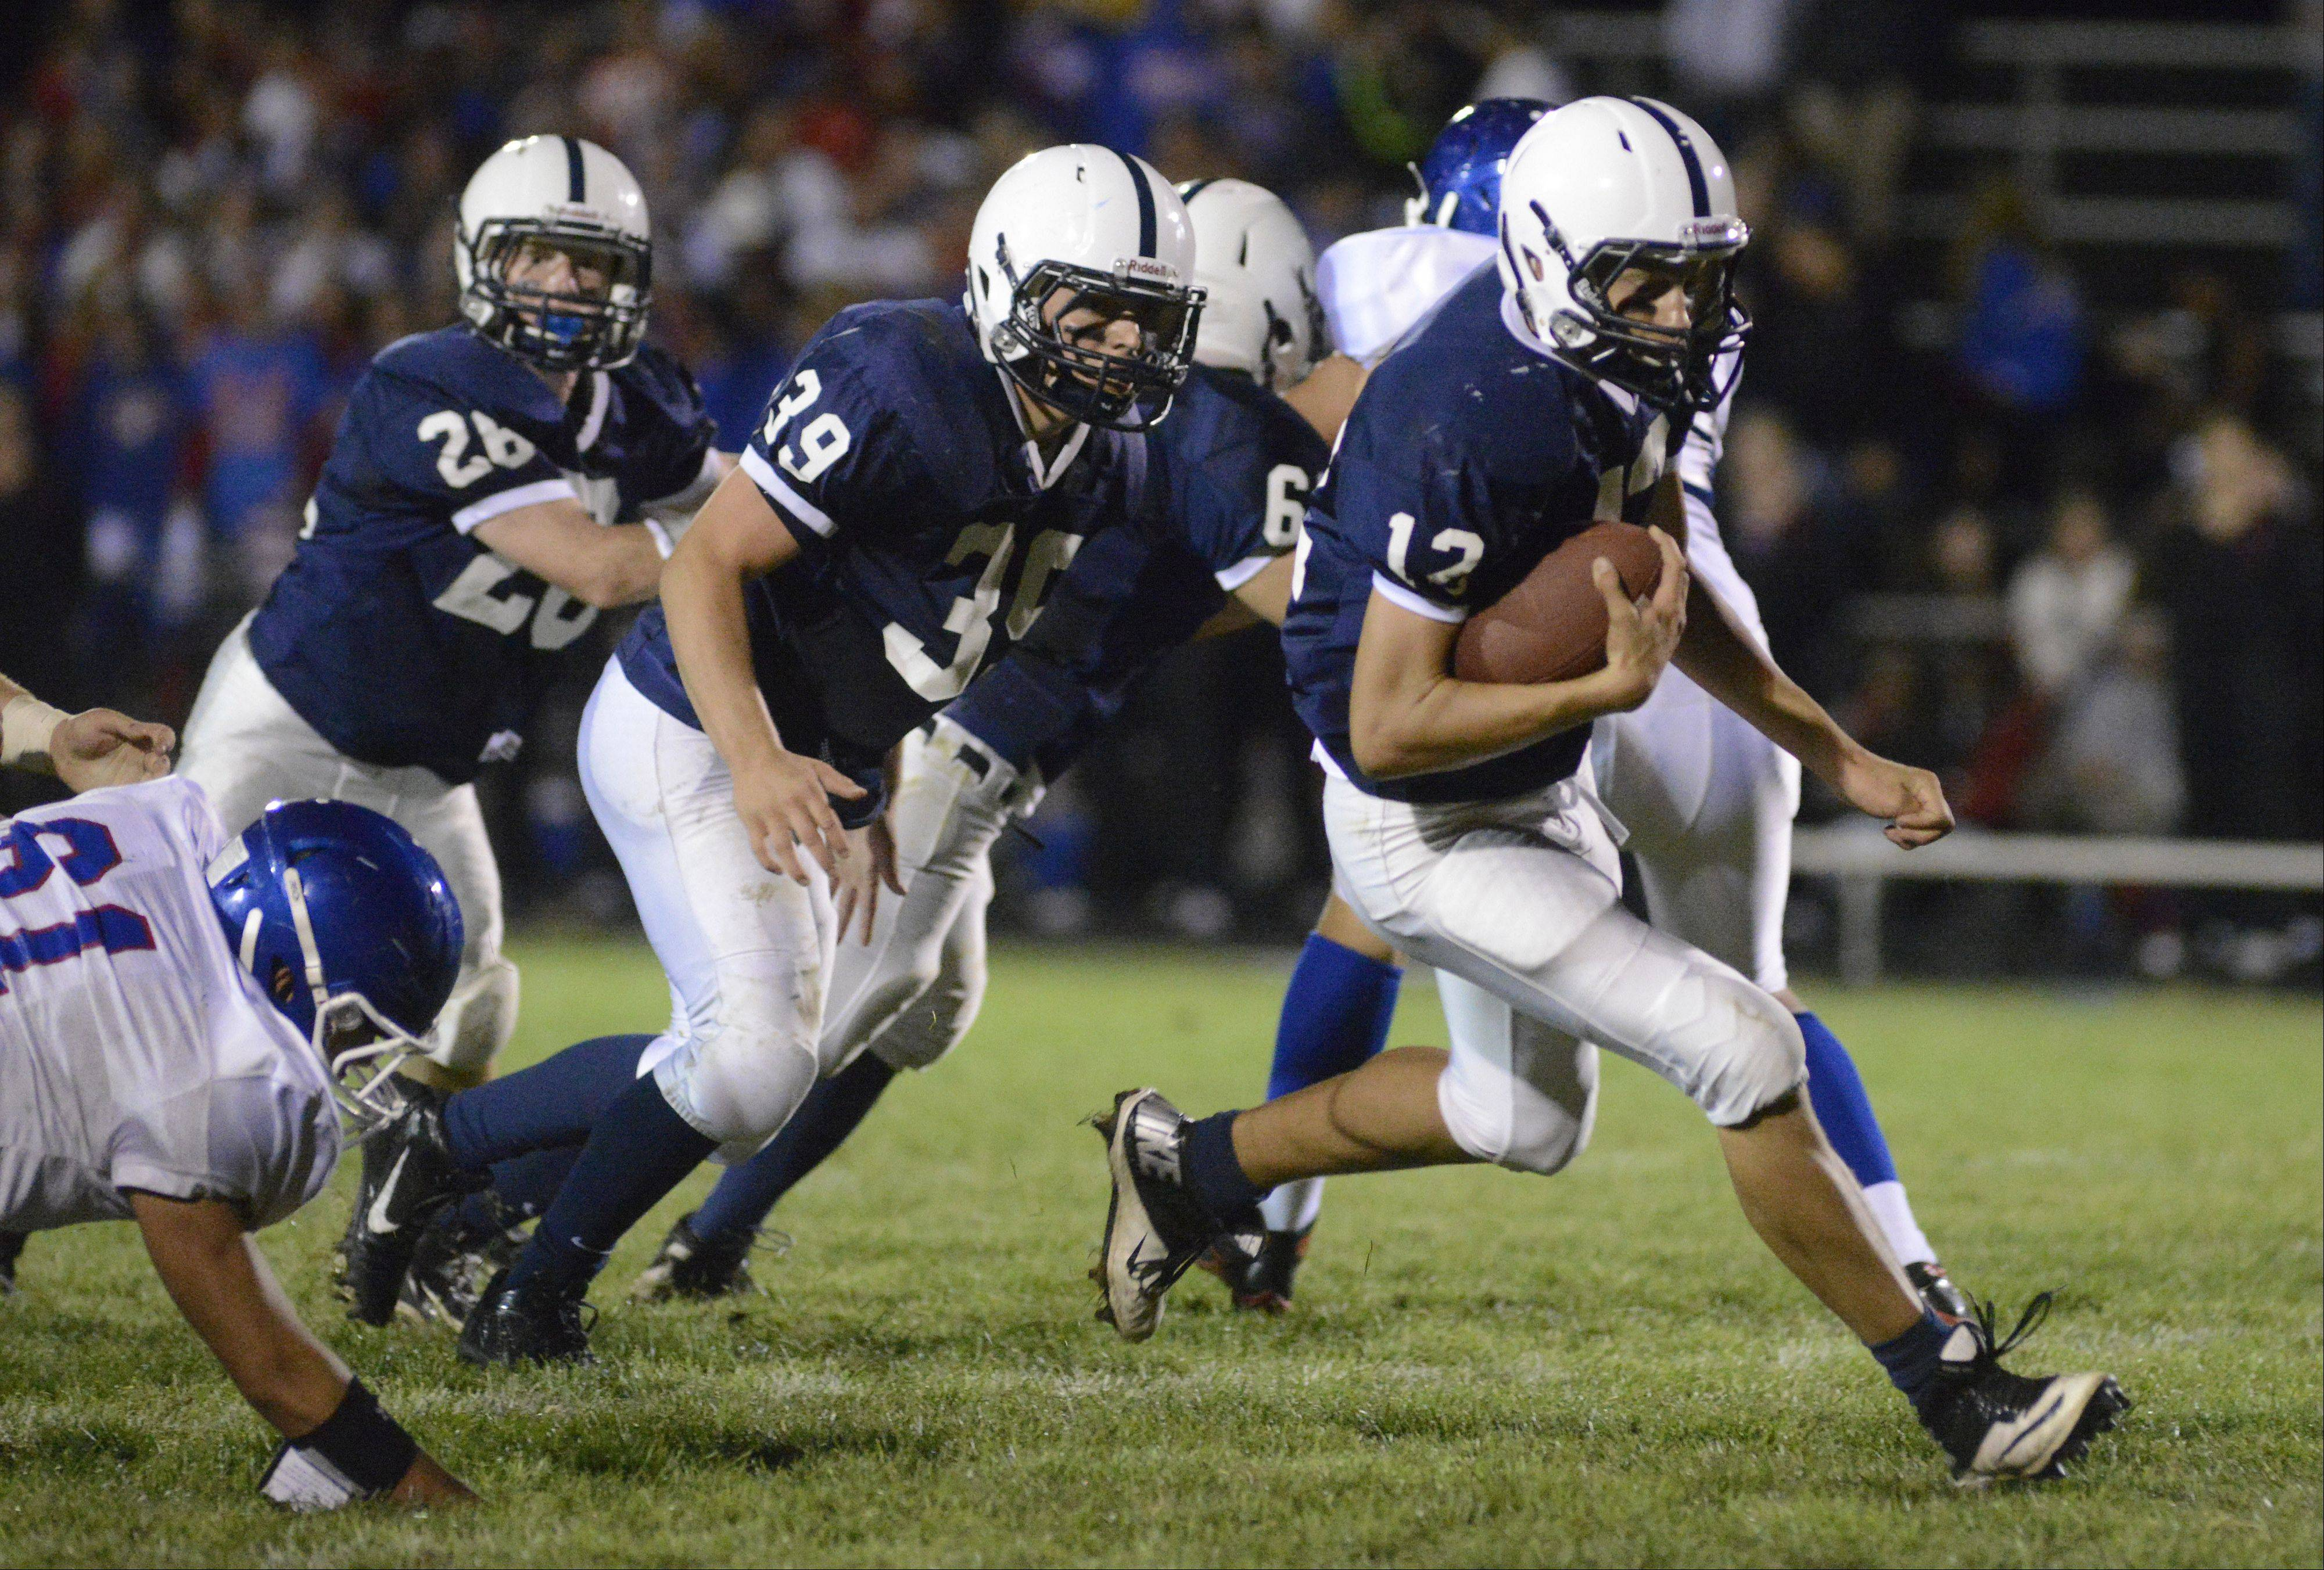 Cary-Grove quarterback Jason Gregoire will lead the Trojans� offense against top-ranked and undefeated Rockford Boylan Saturday in a Class 6A second-round playoff game at Cary-Grove.